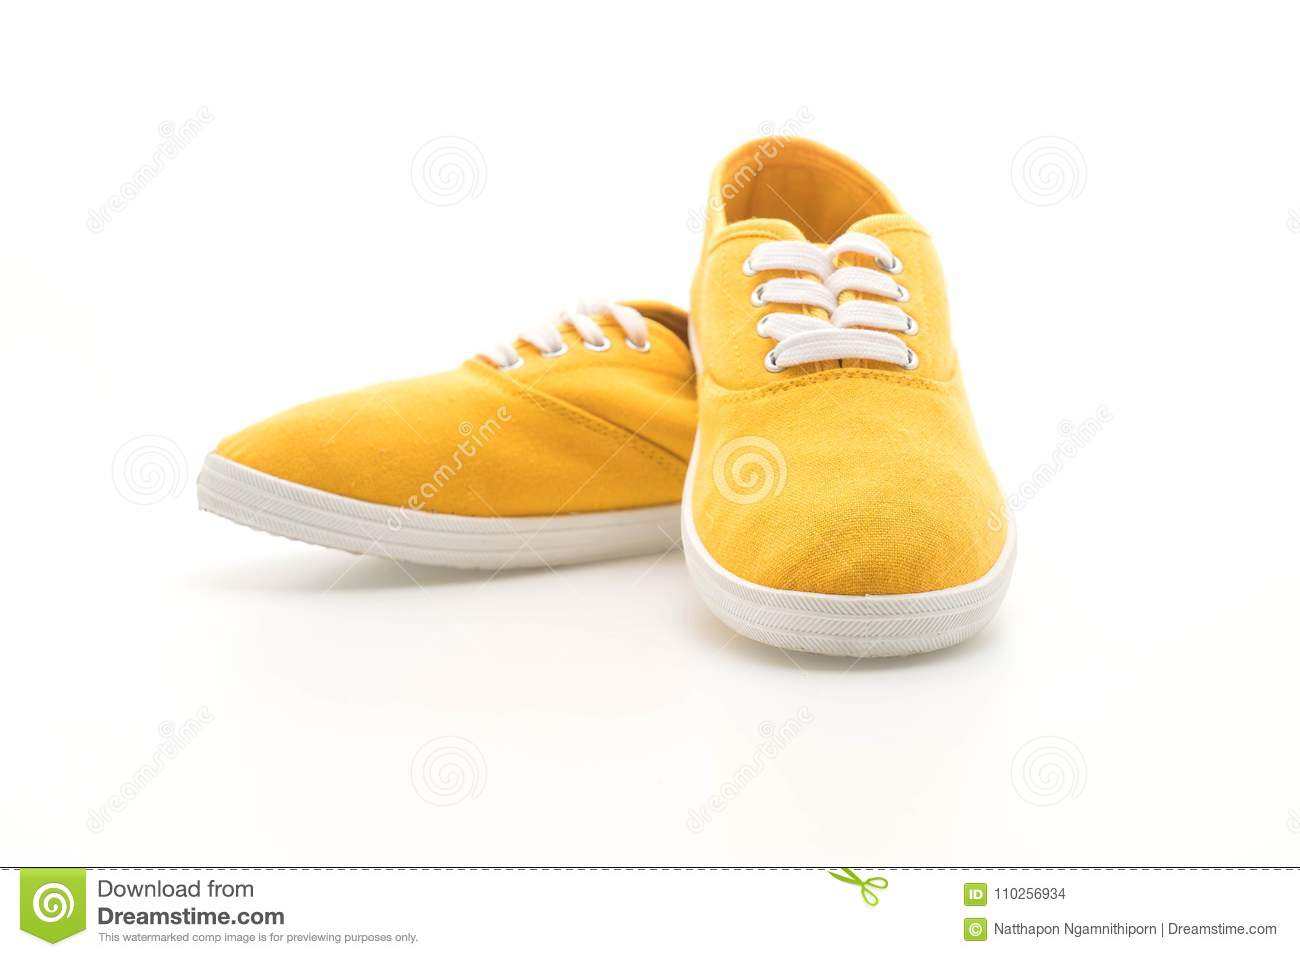 f1dfff7c67cd58 Yellow Sneakers On White Background Stock Photo - Image of style ...